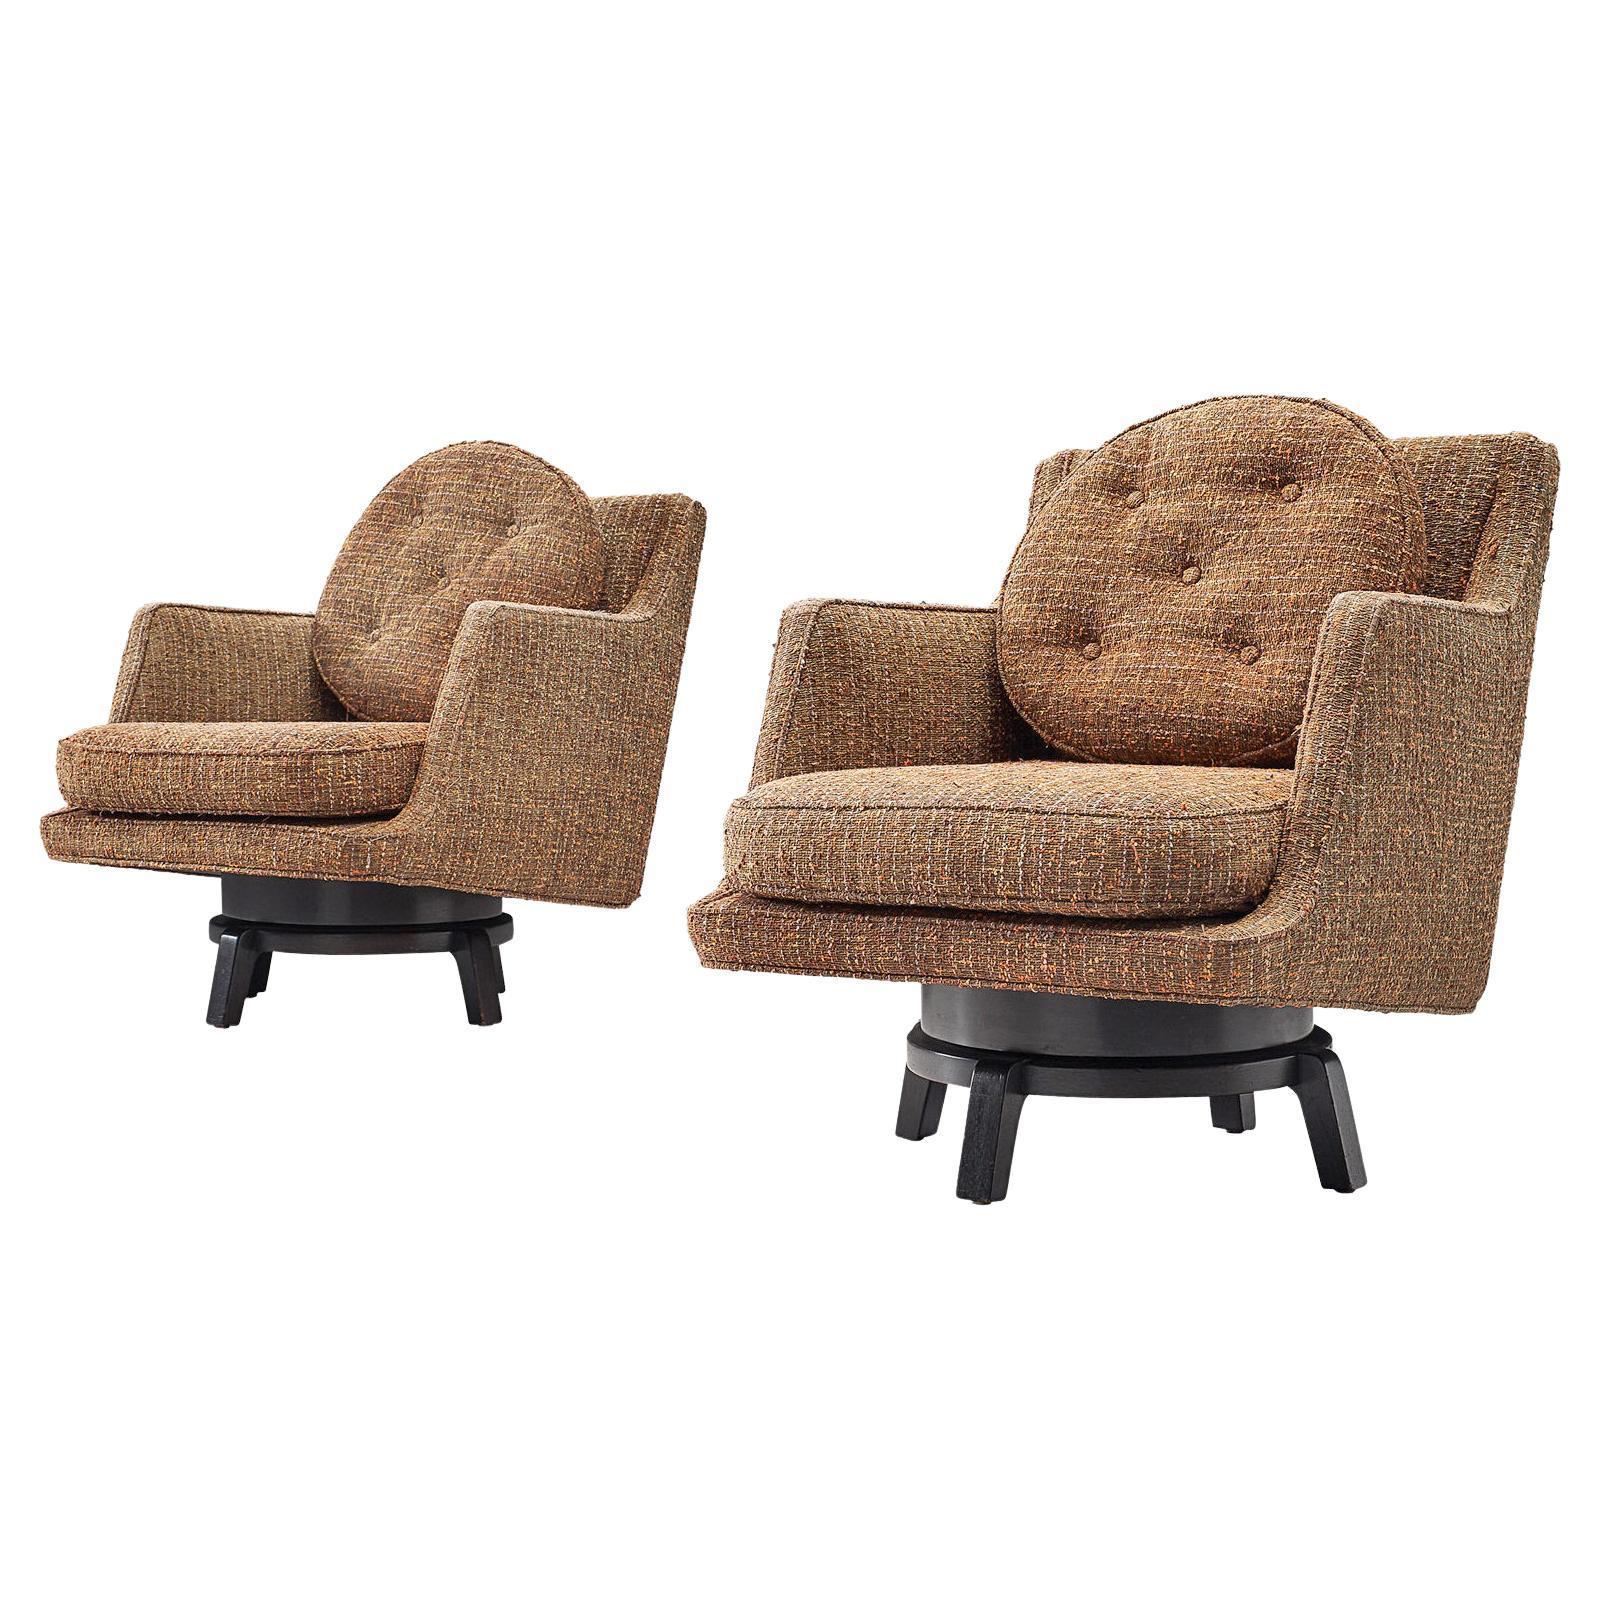 Edward Wormley Swivel Chairs Model '5609' in Mahogany and Fabric Upholstery